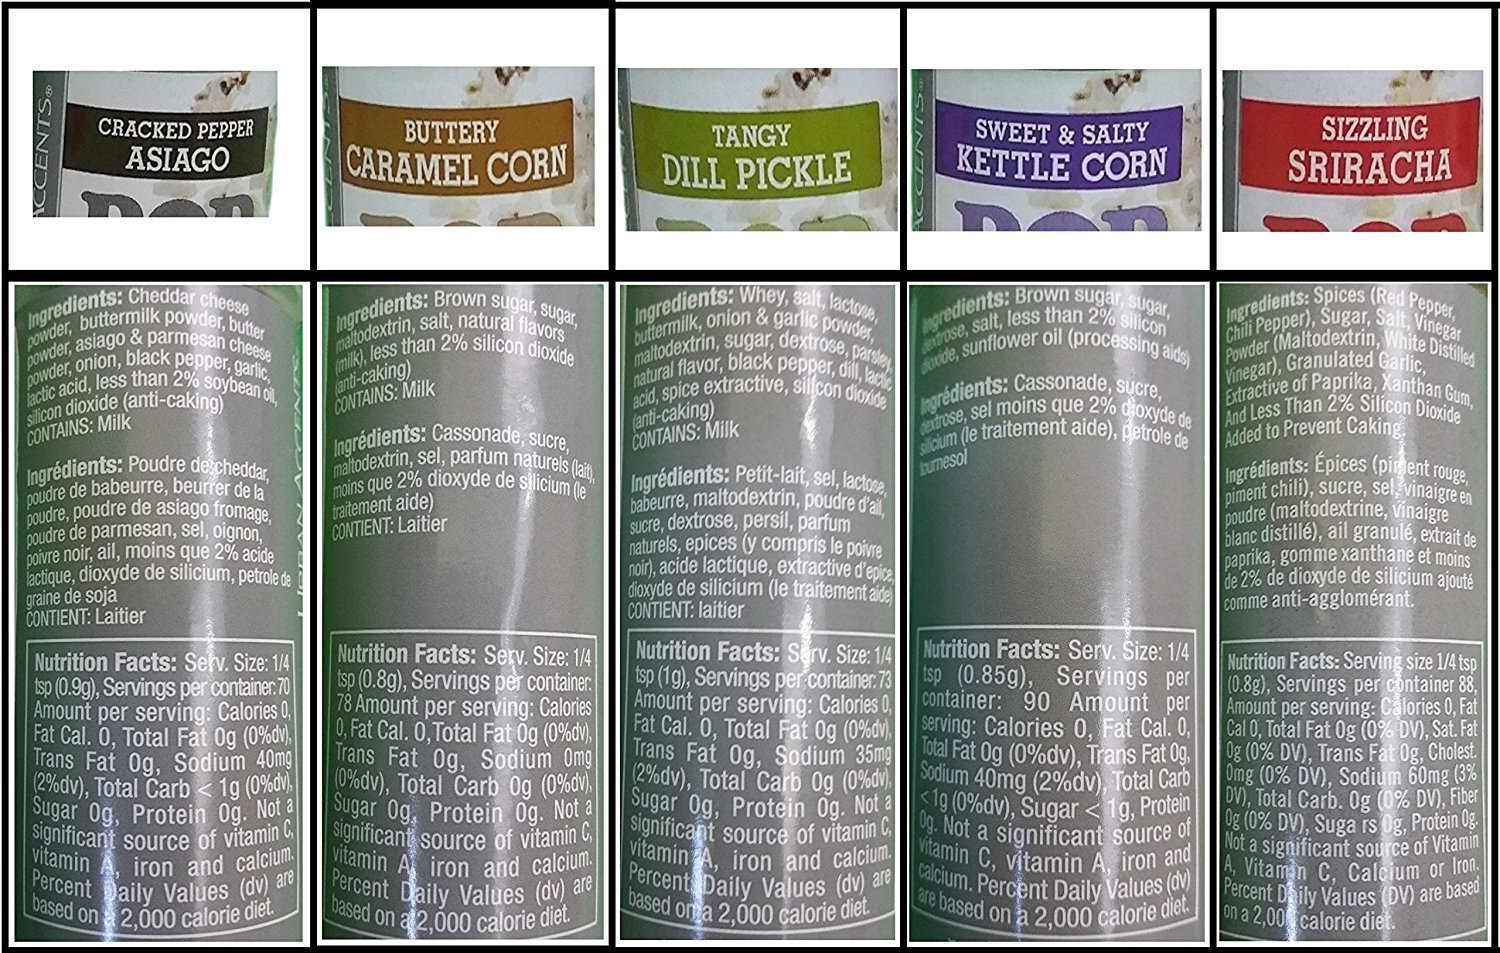 Gourmet Popcorn Seasoning Variety Pack, All Natural (6 Flavors) - Dill Pickle, White Cheddar, Caramel, Kettle Corn, Sriracha, Cracked Pepper Asiago (Magnet Included) by MagZen (Image #3)